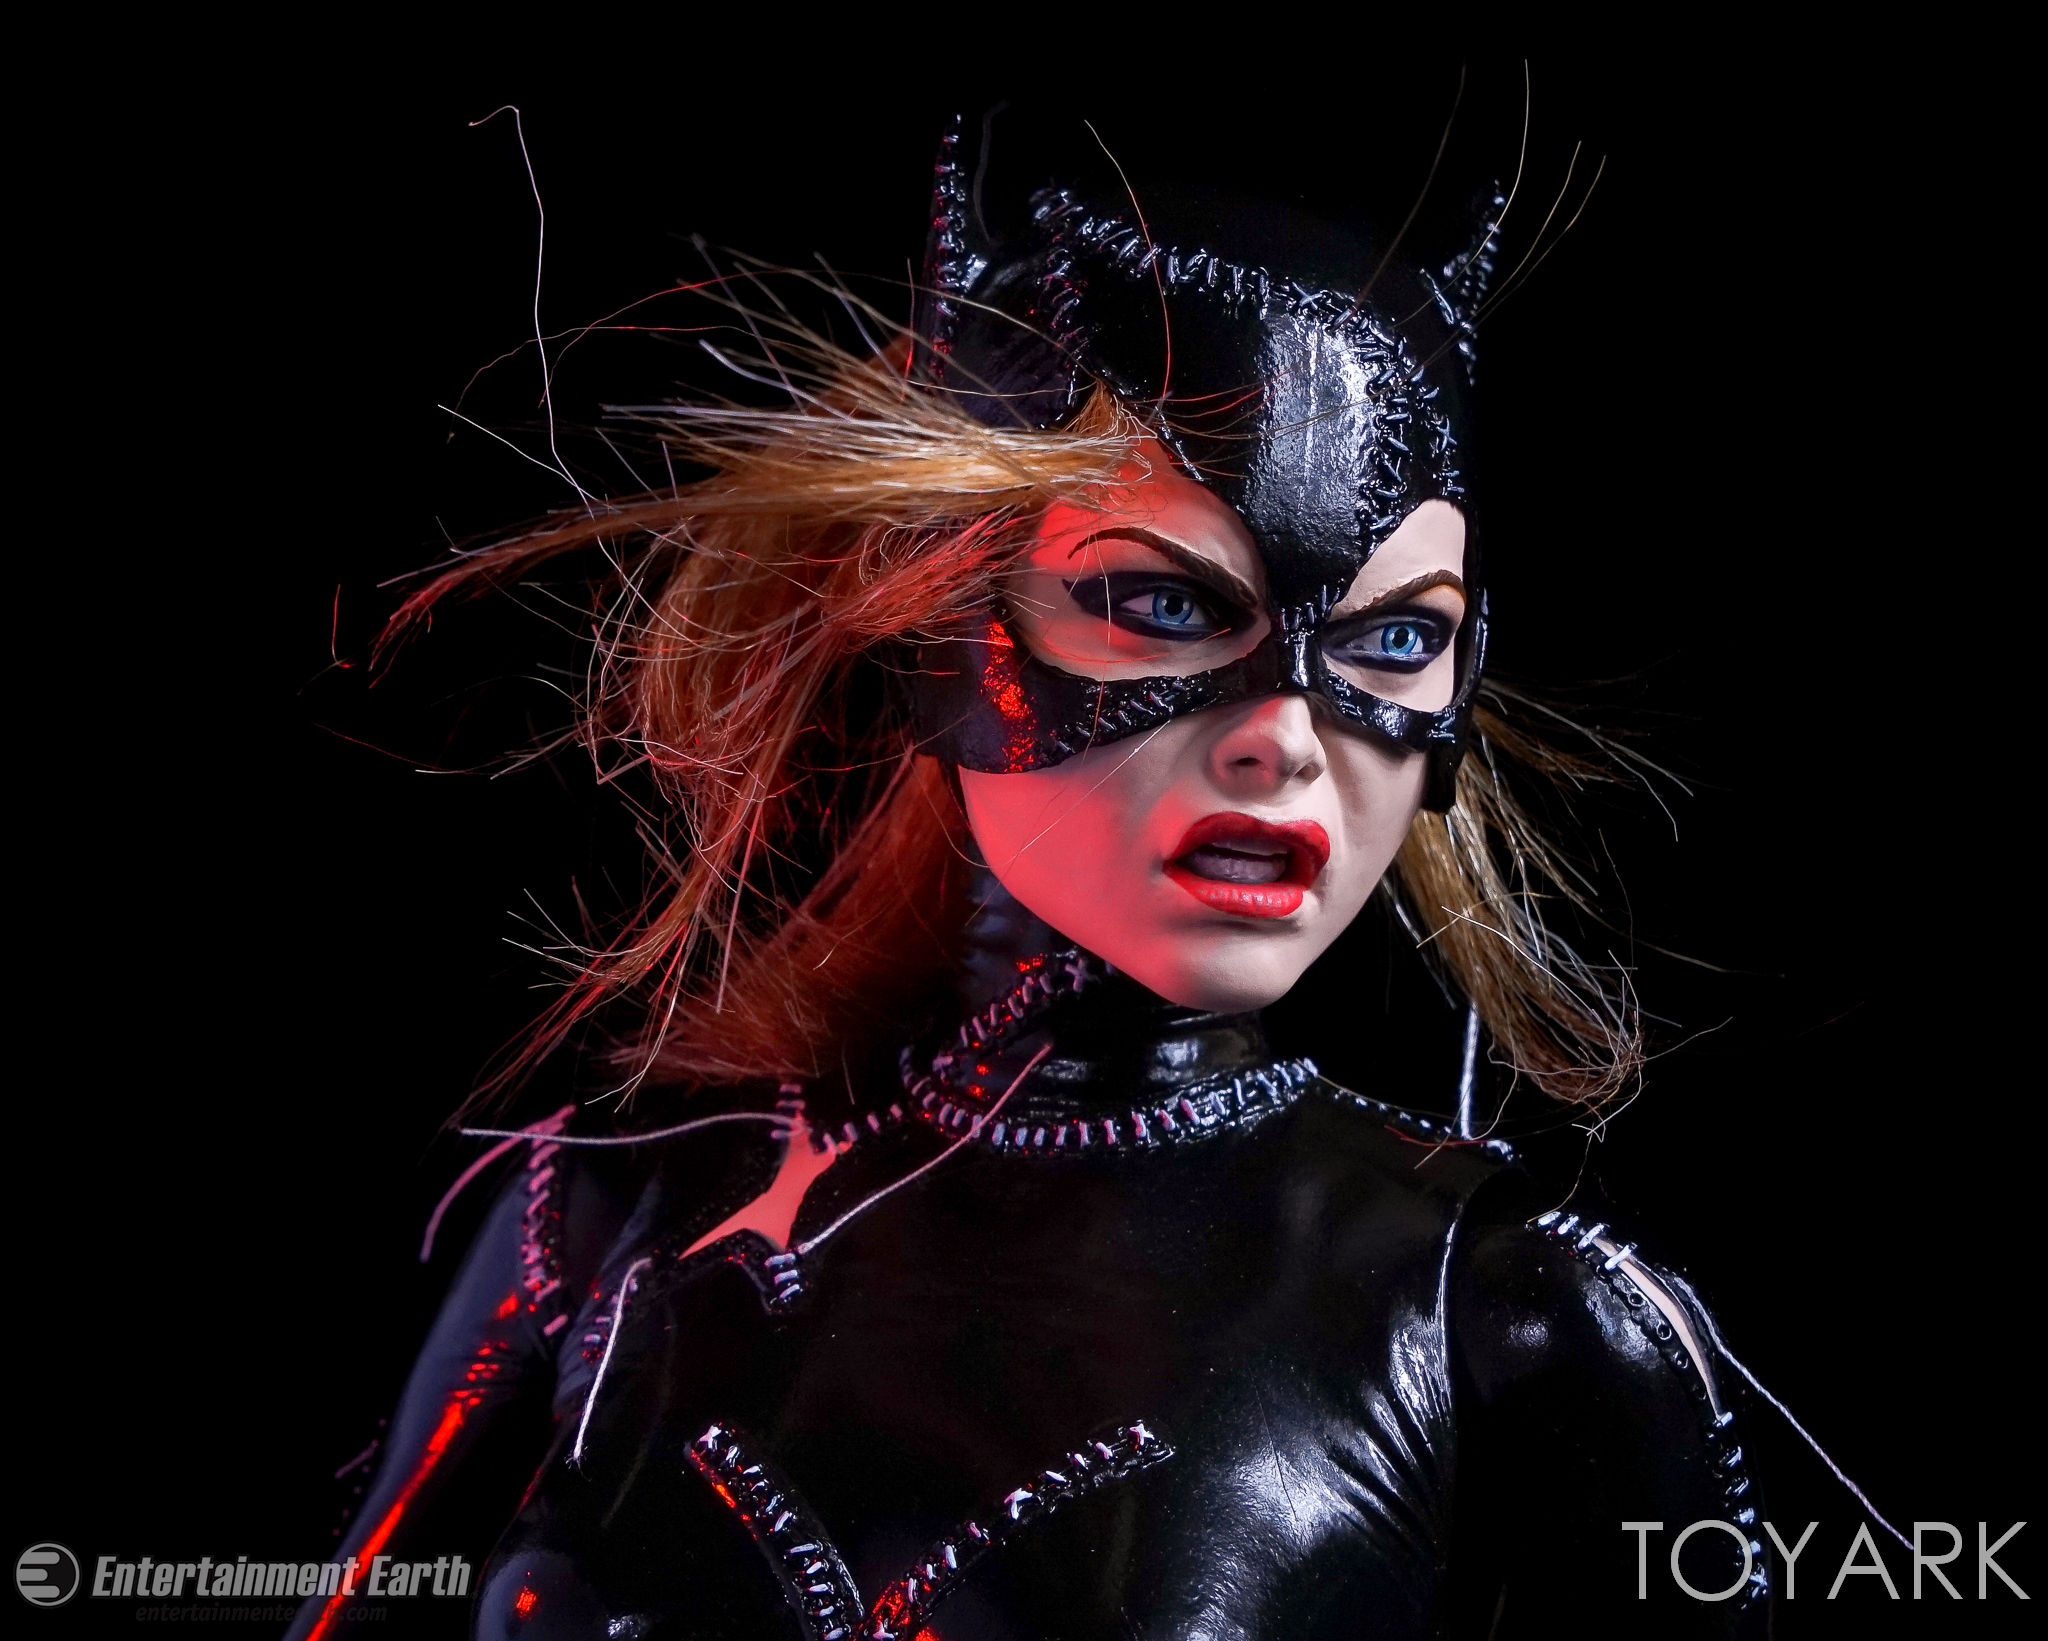 http://news.toyark.com/wp-content/uploads/sites/4/2017/03/NECA-Batman-Returns-Catwoman-047.jpg